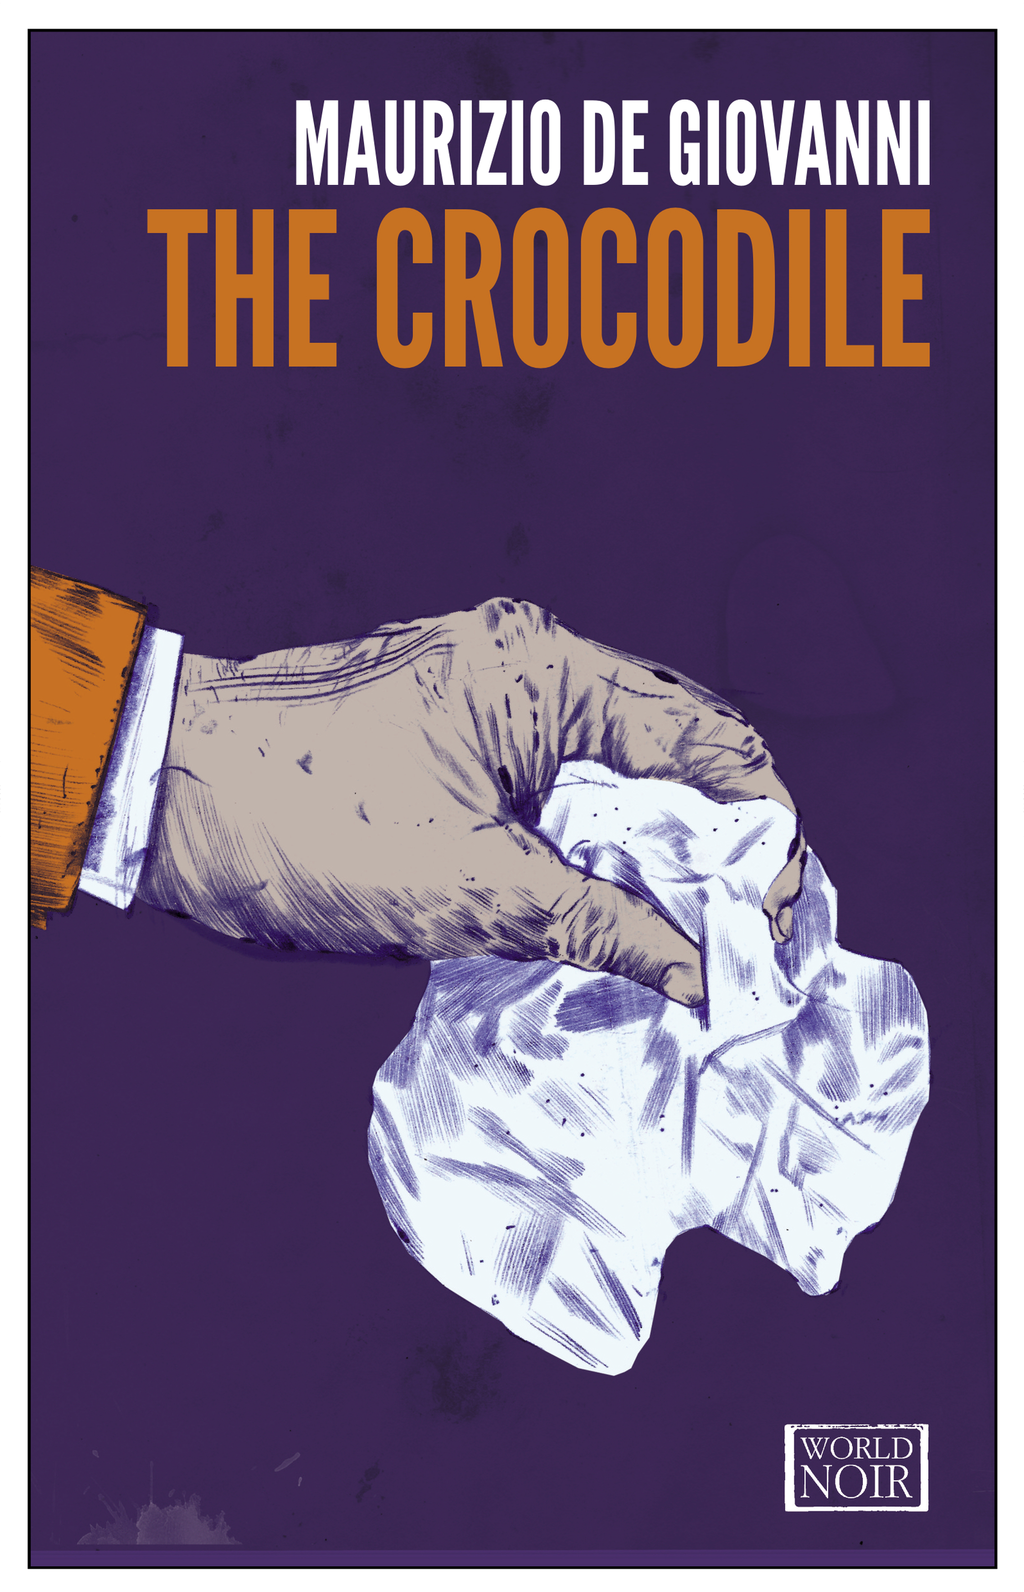 The Crocodile